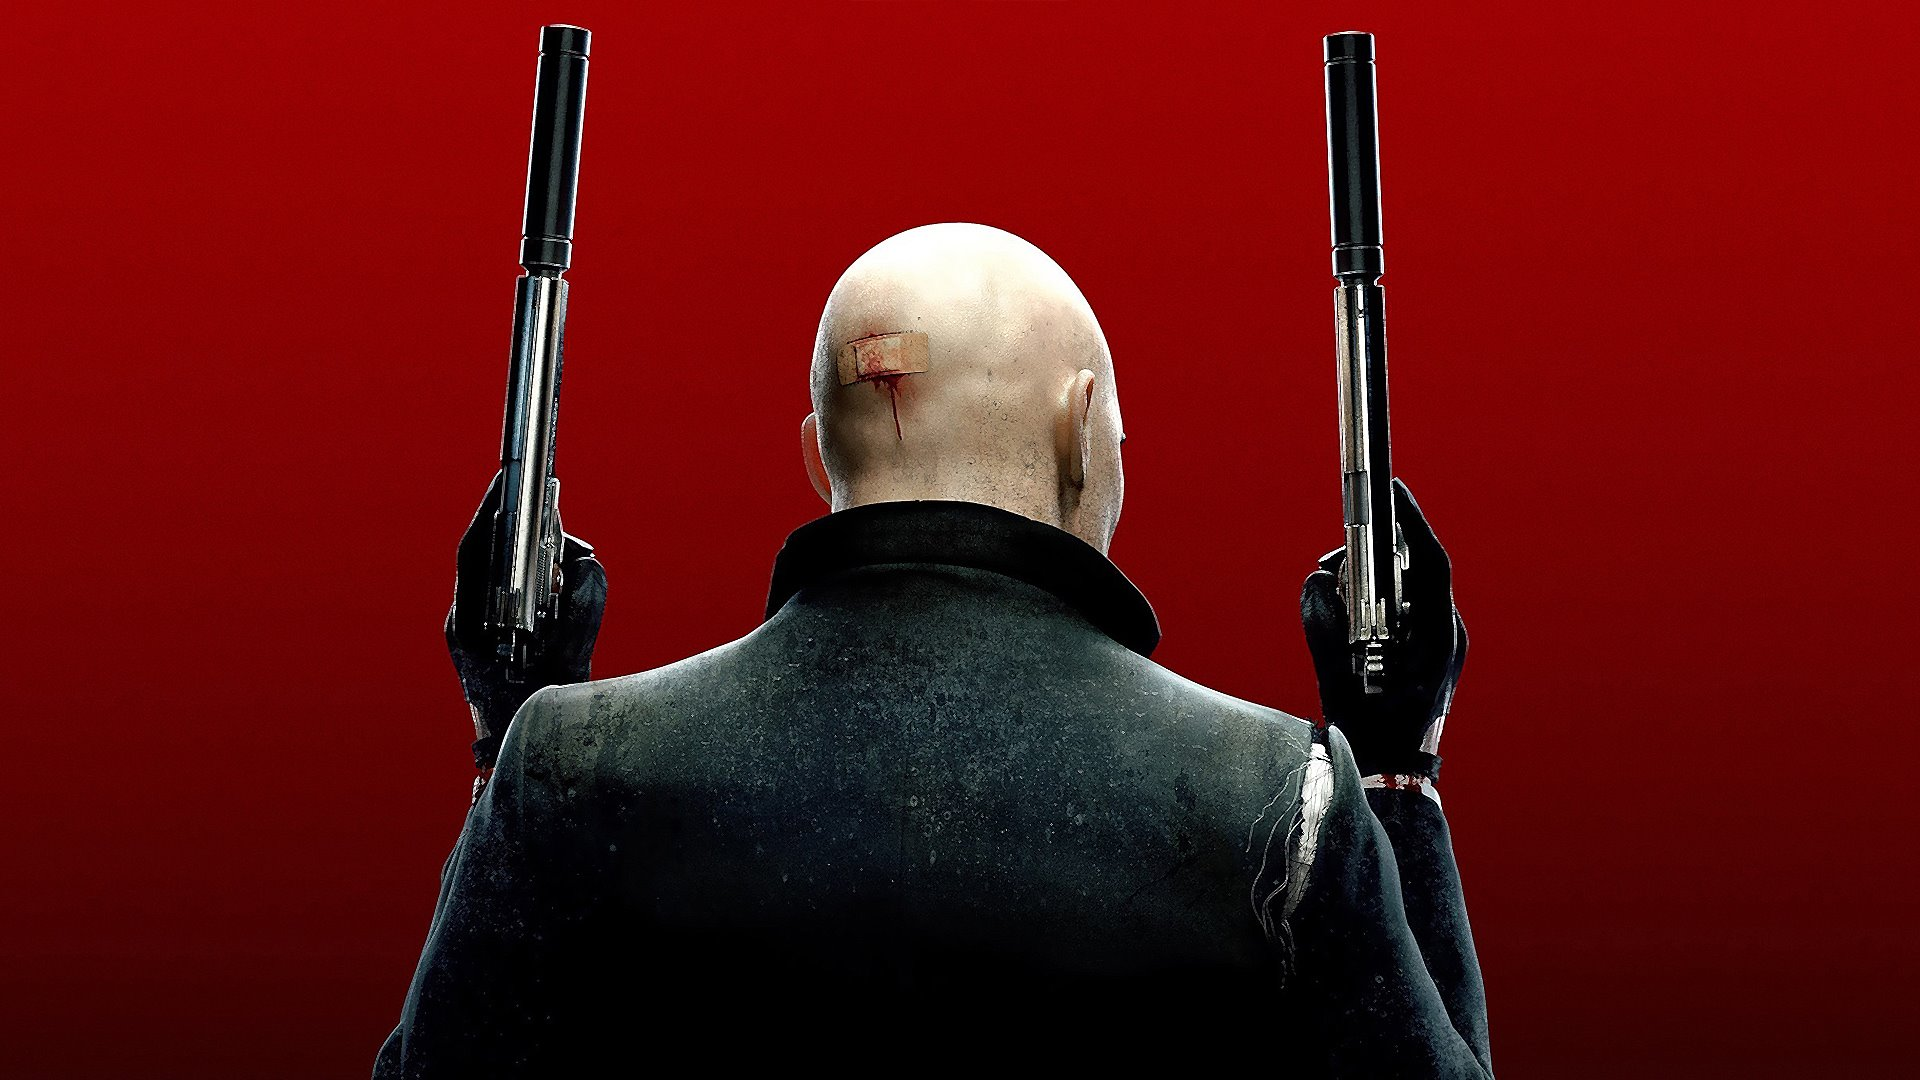 3840x1080 Pubg Wallpaper Hitman Absolution Full Hd Fond D 233 Cran And Arri 232 Re Plan